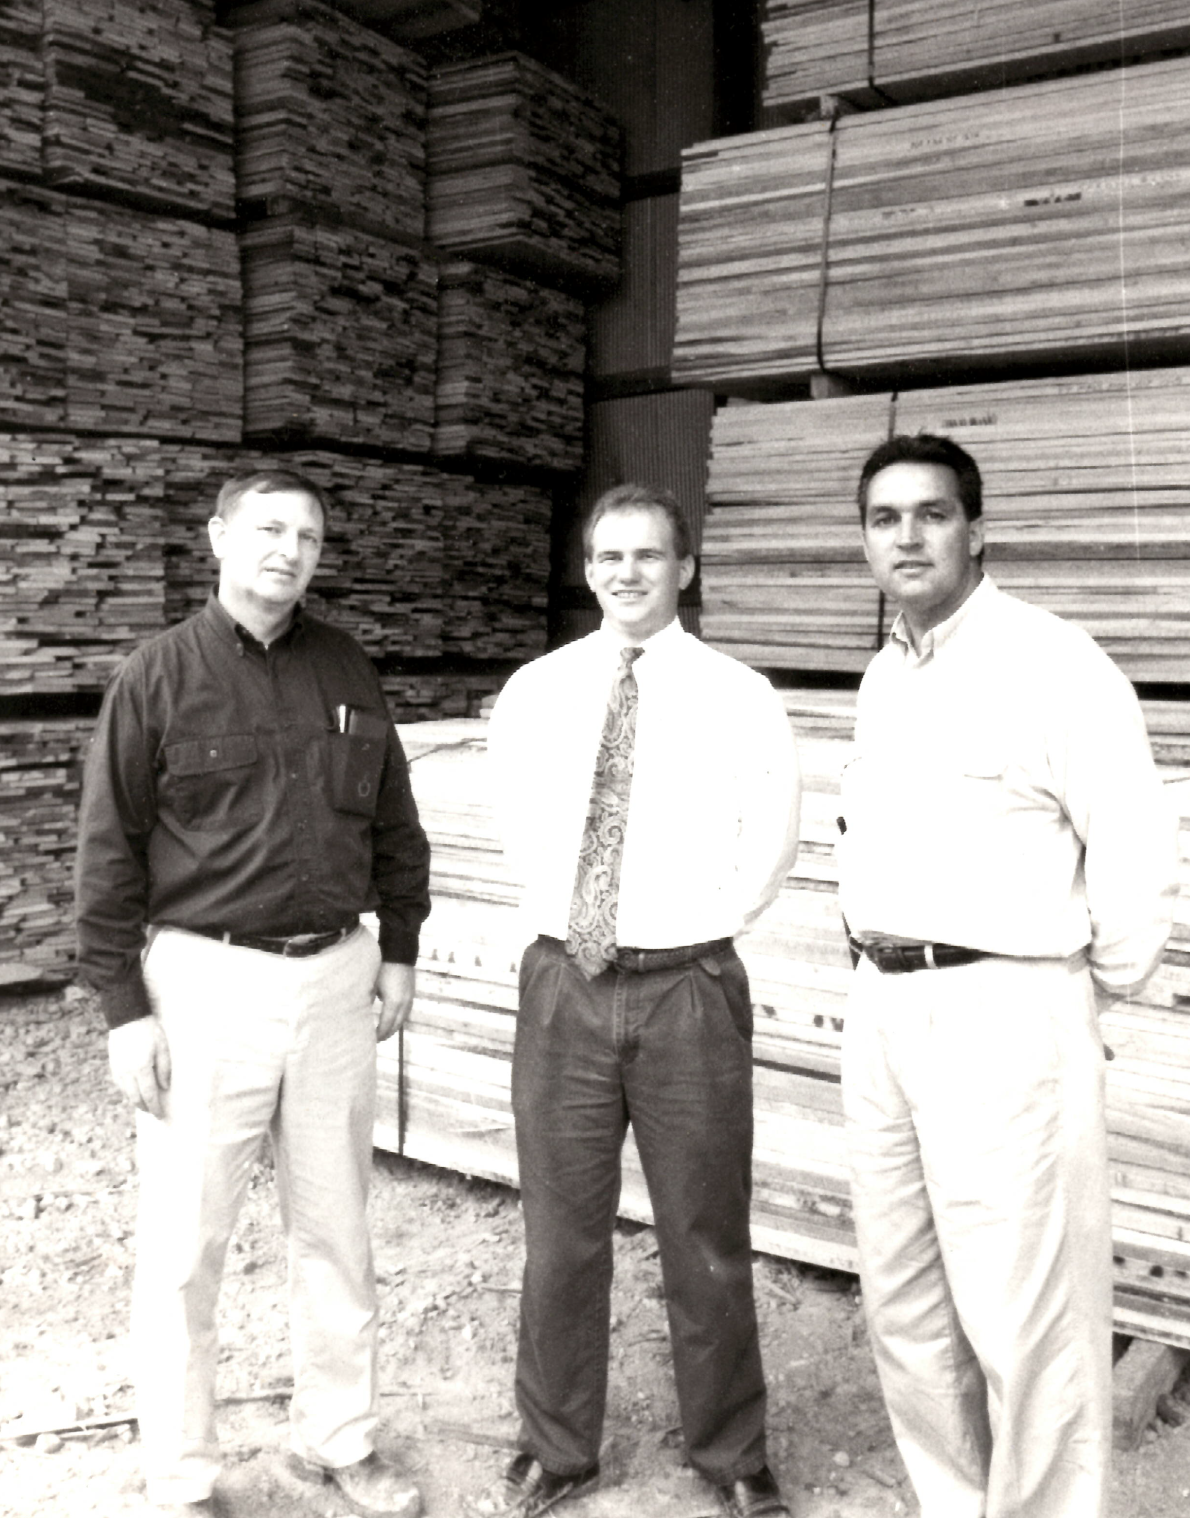 Parker Boles shown on the far right in one of Hermitage Hardwood's sheds in 1994.